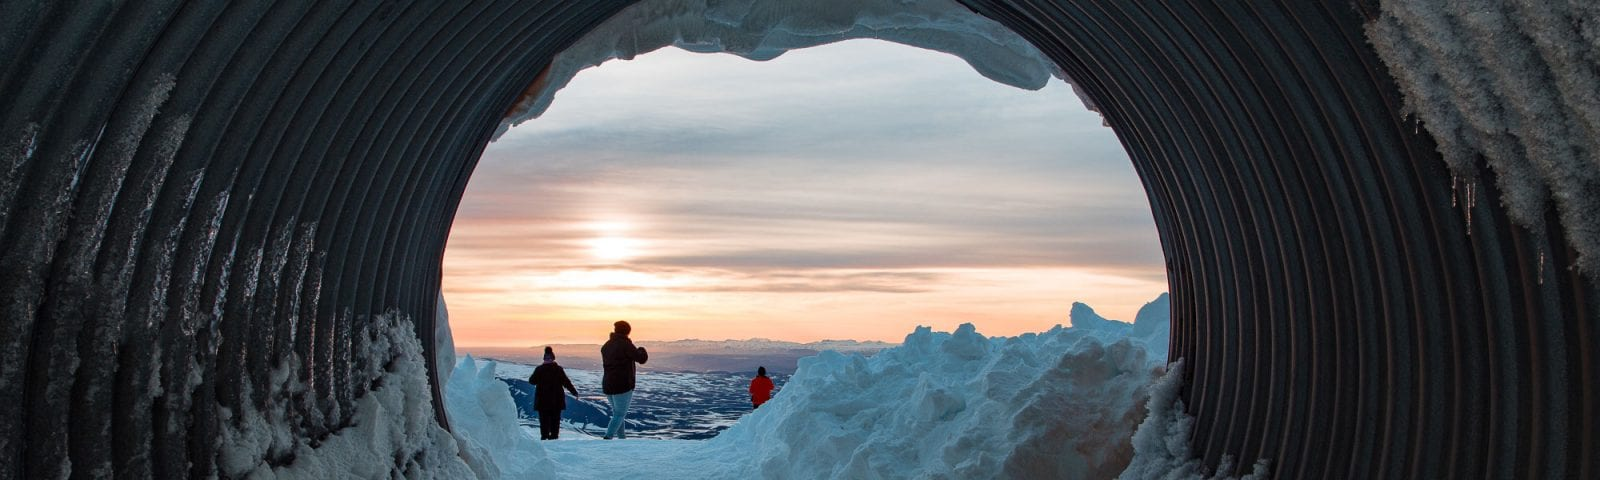 Entrance to Into the Glacier ice cave